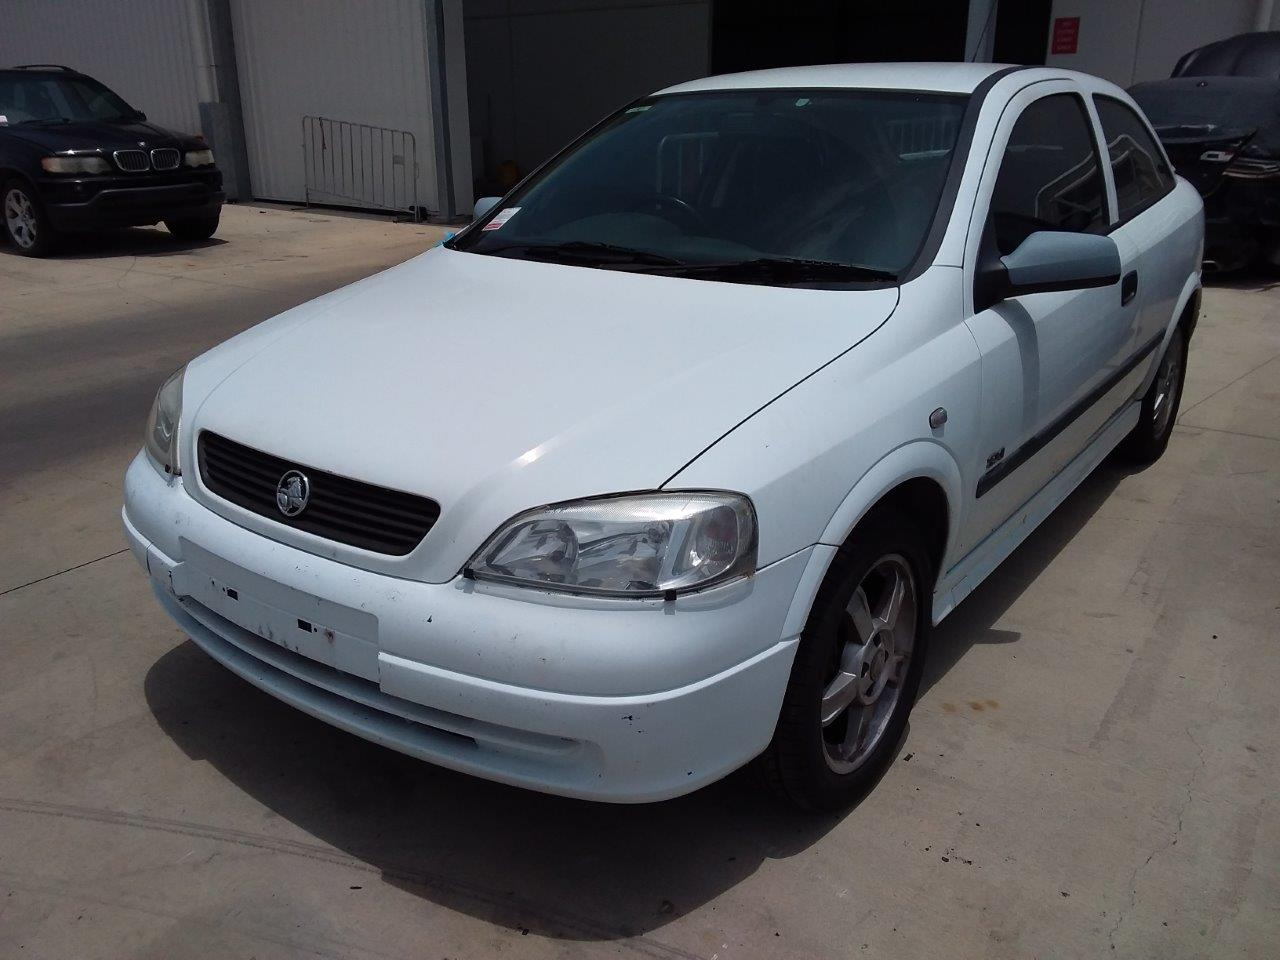 2002 Holden Astra SXi TS Manual Hatchback